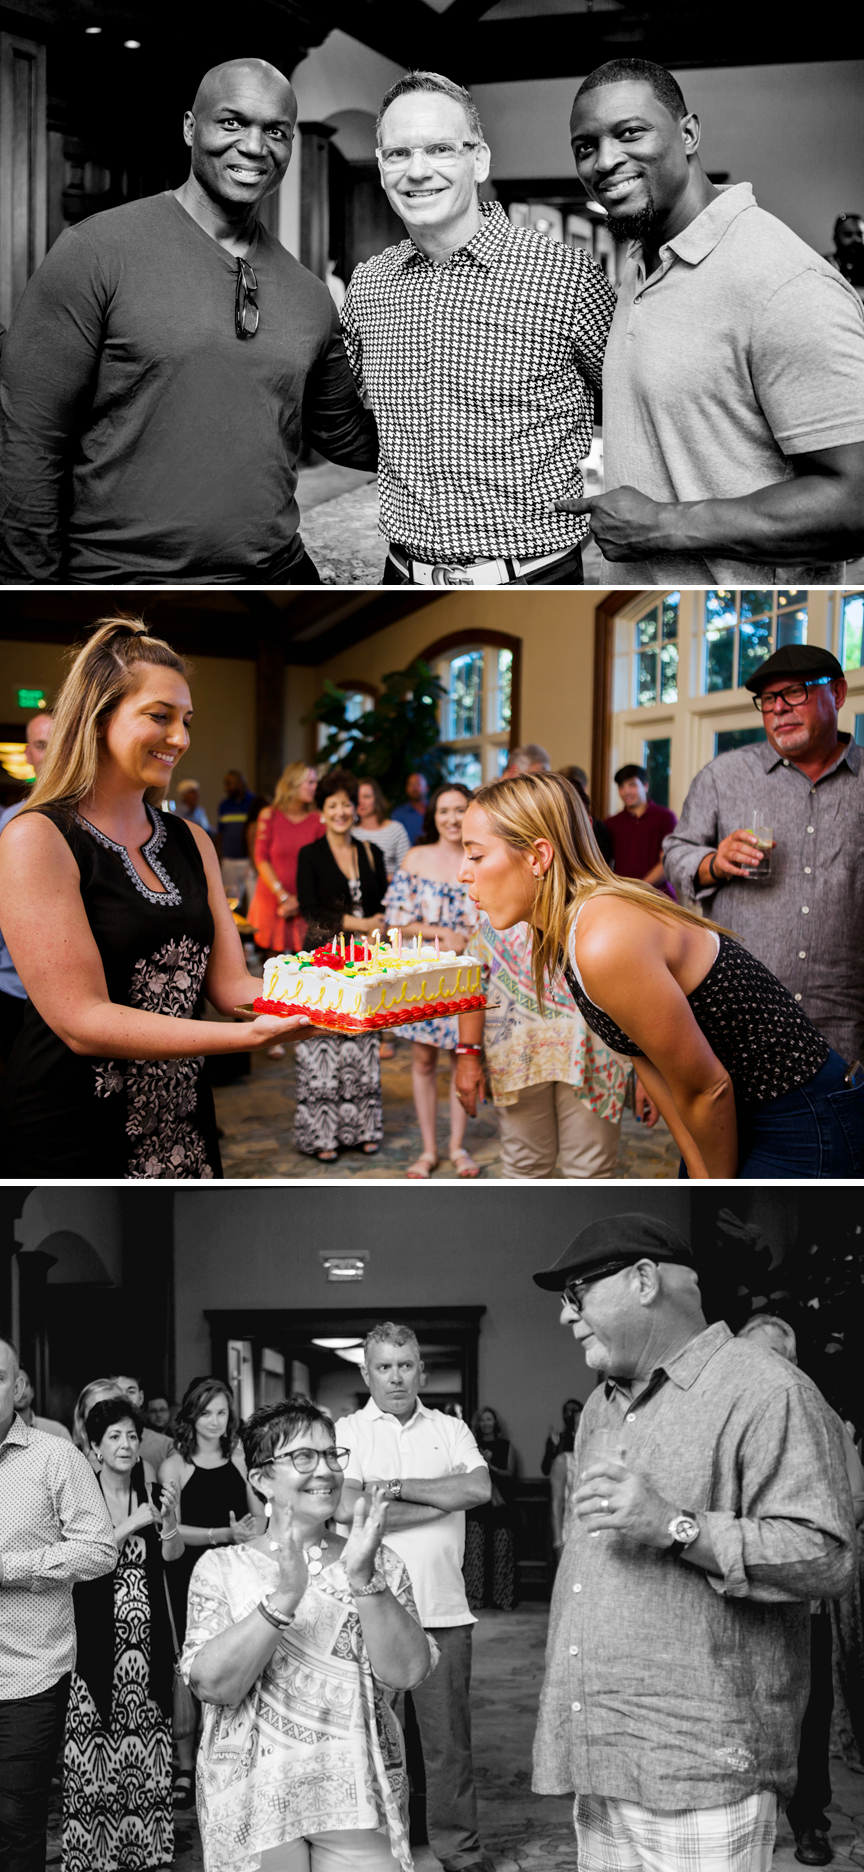 Bruce_Arians_Foundation_Mo_Davis_Photography2.jpg